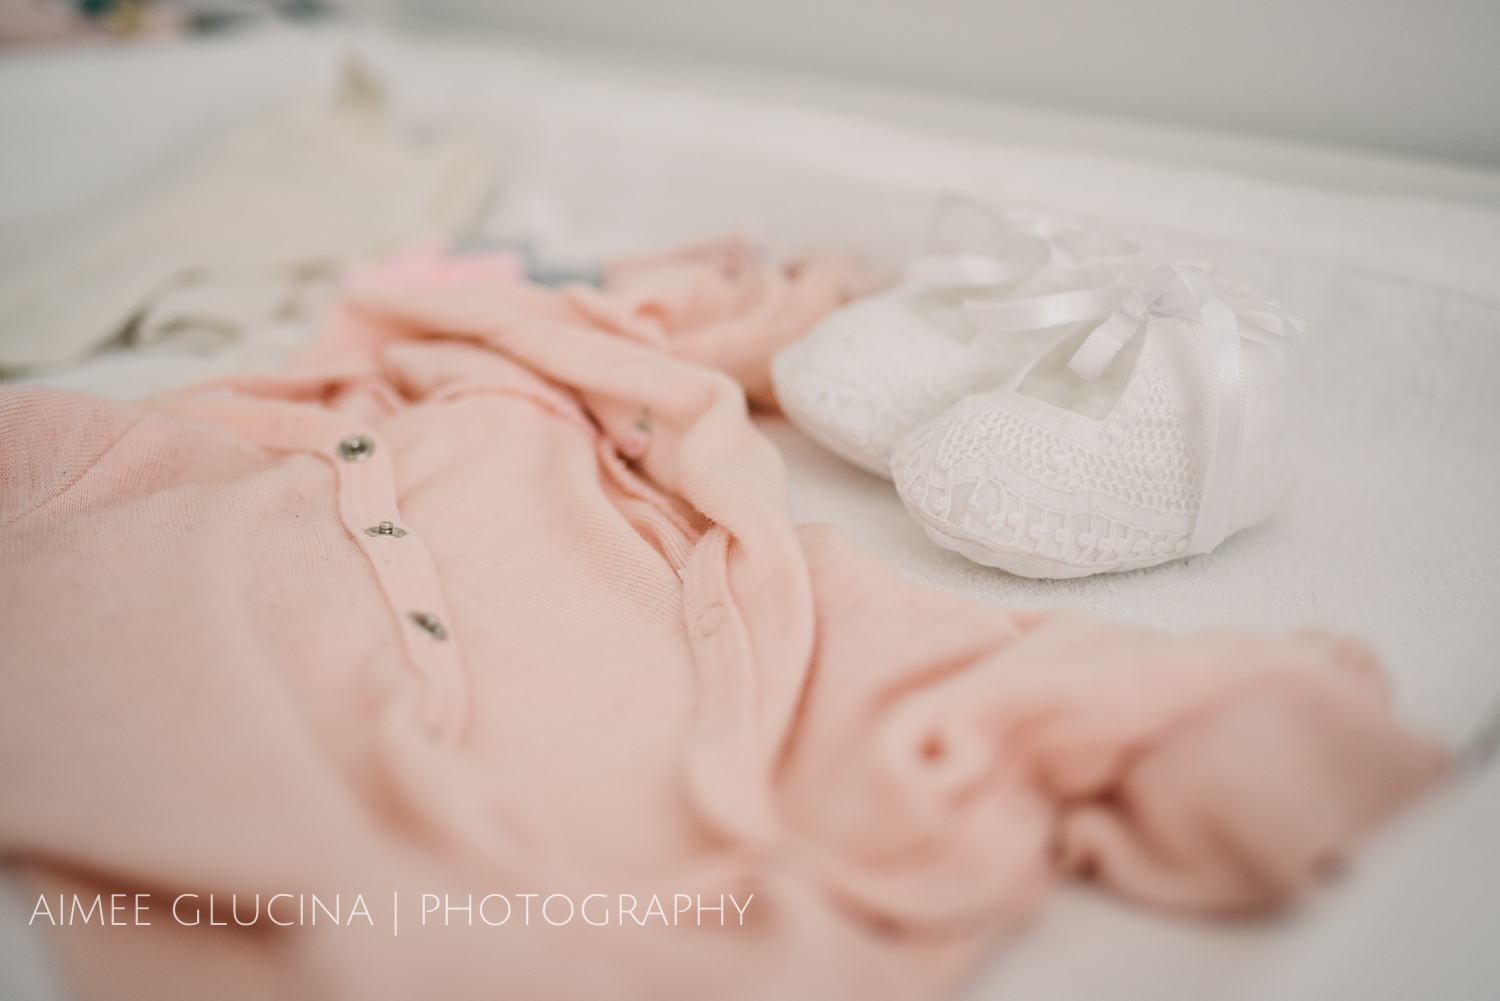 Thompson Newborn Session by Aimee Glucina Photography-13.jpg